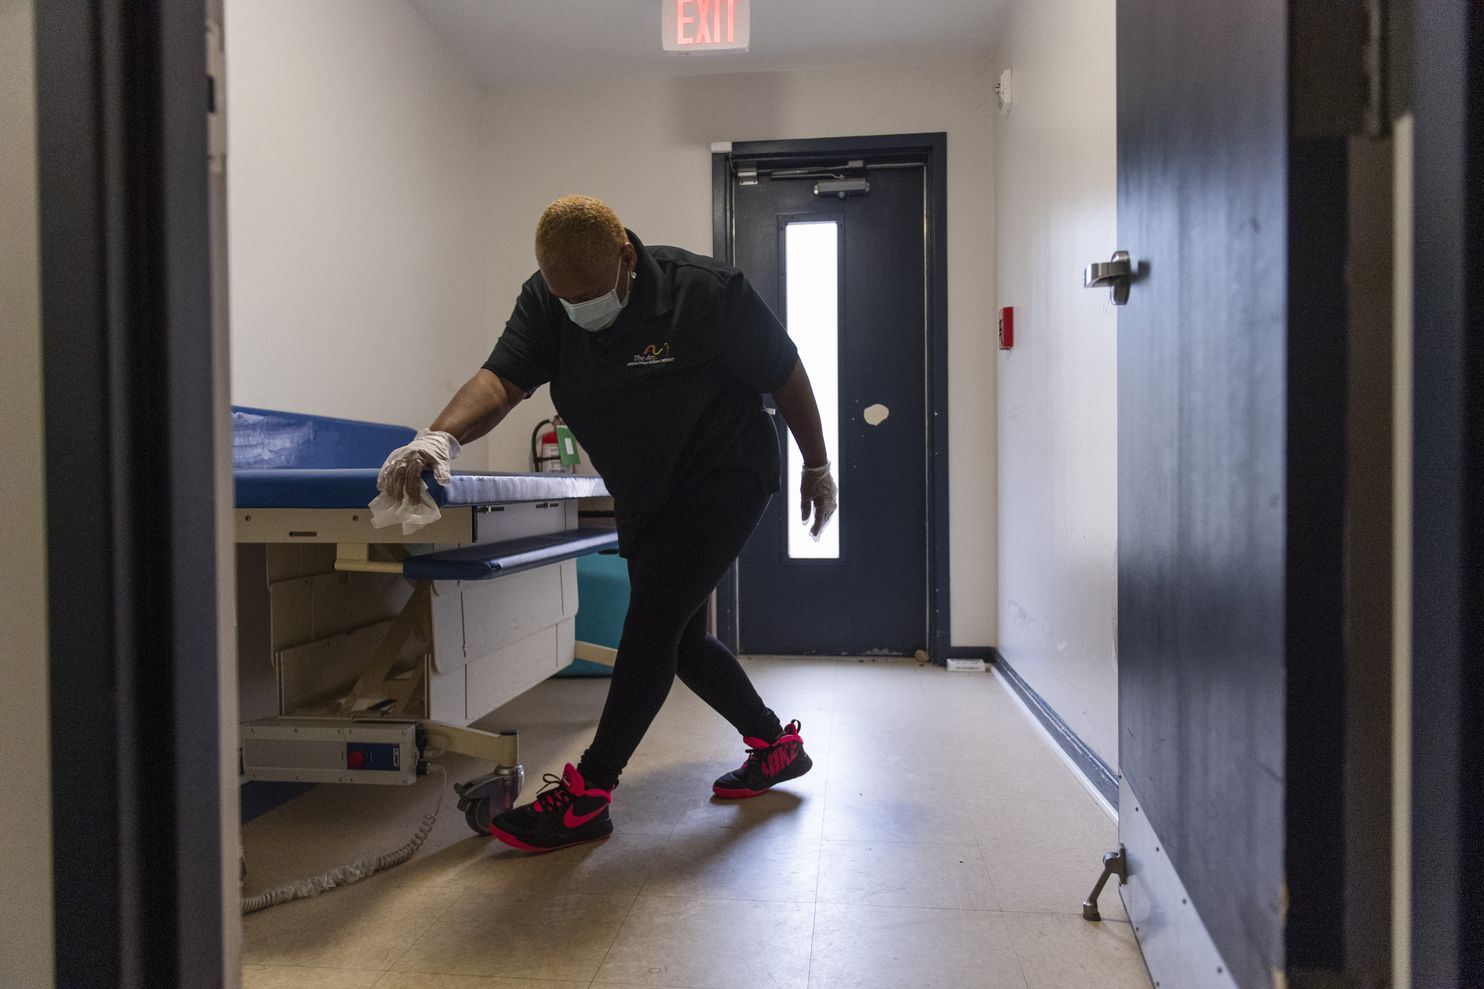 Man Cleaning the area before the Clorox Disinfecting Wipes opened